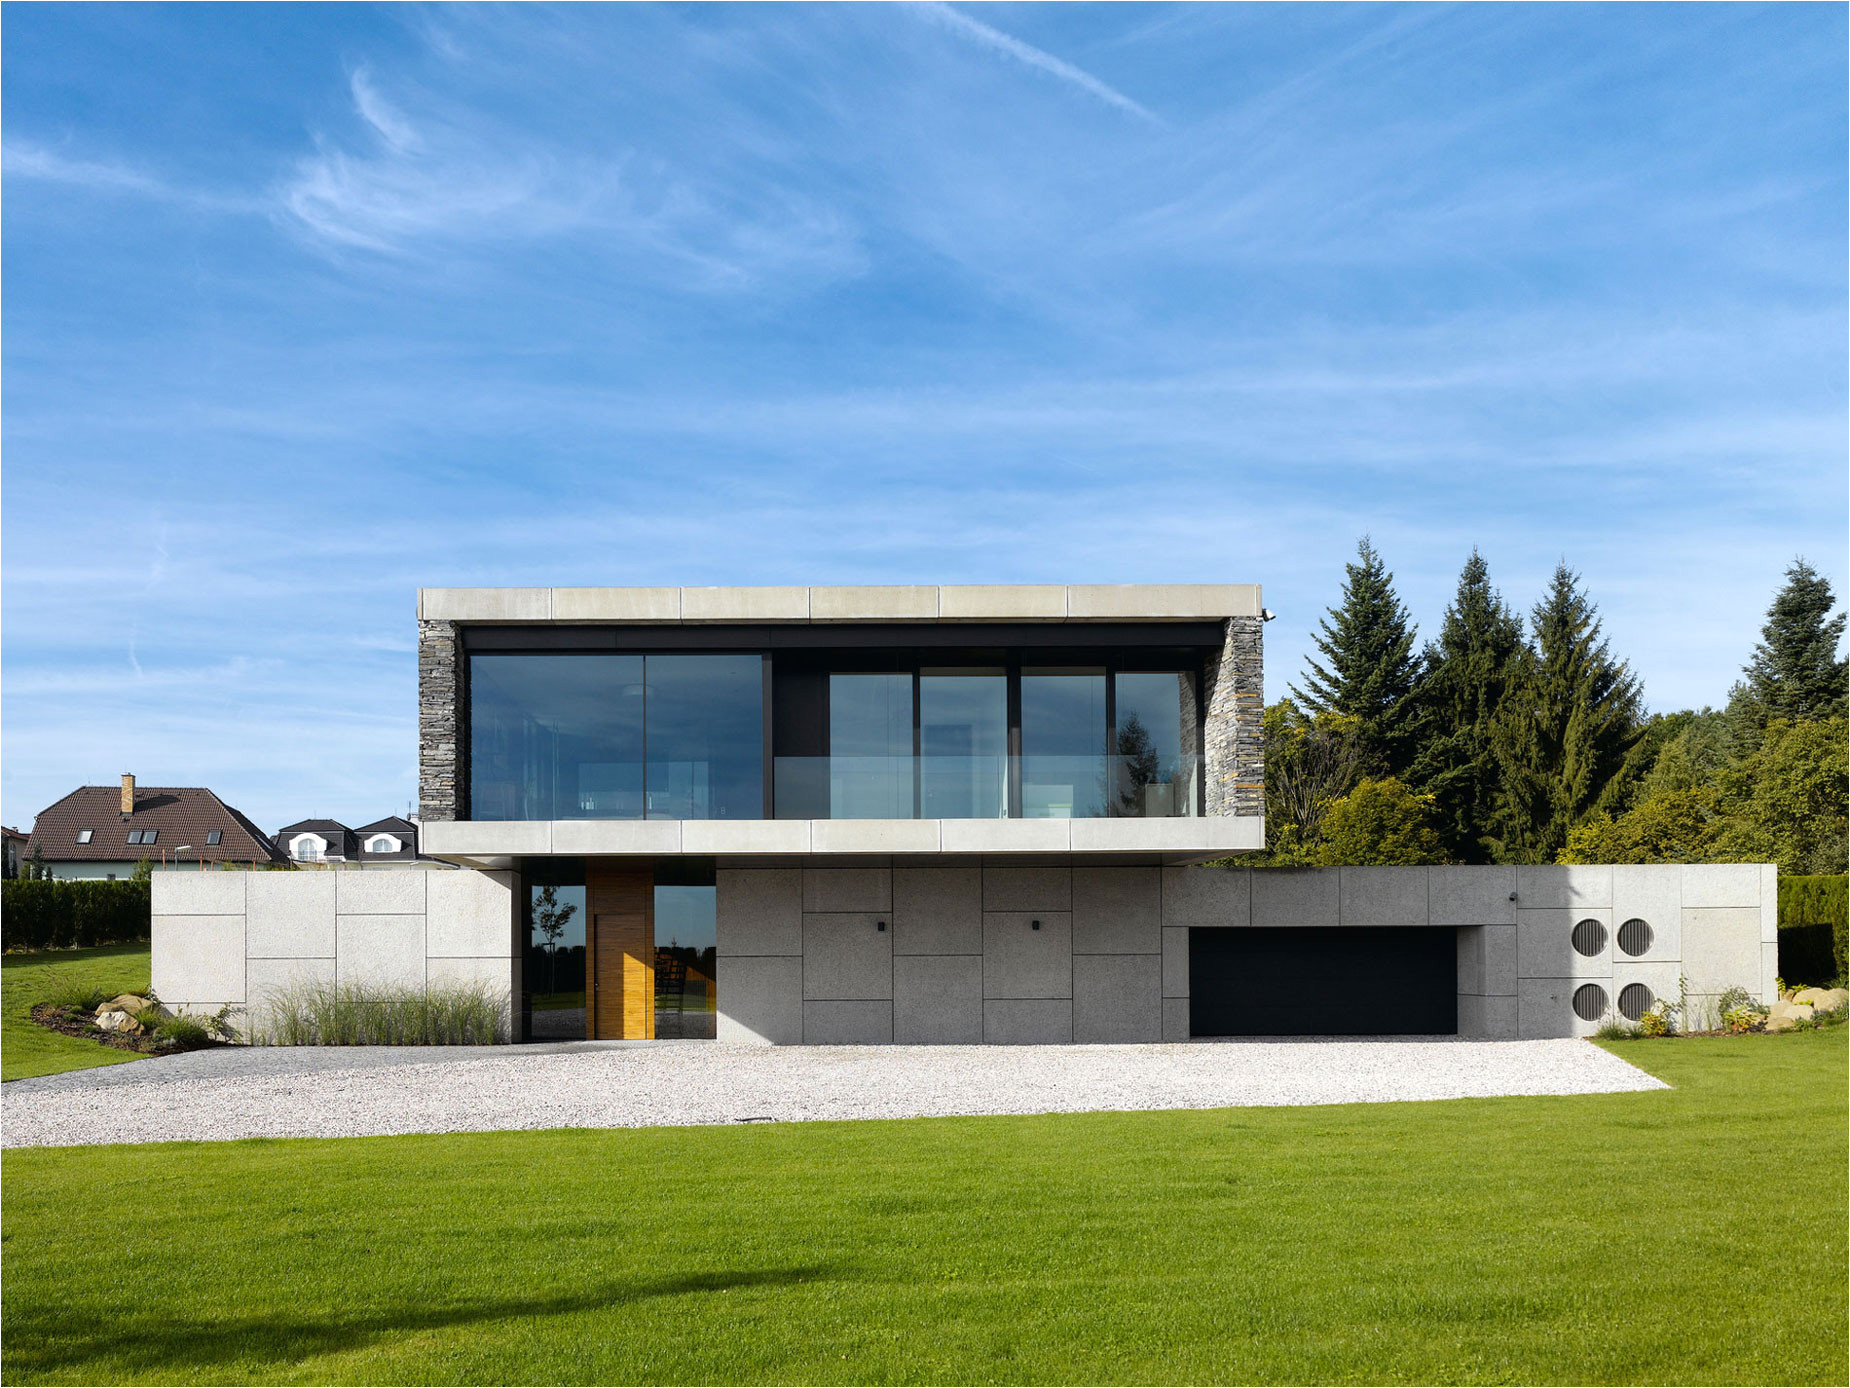 Cement Home Plans Modern House Plans Gl Walls – plougonver.com on open houses, window houses, wooded houses, gated houses, garden houses, private houses, wealth houses, pool houses, narrow houses, carport houses, wood houses, desolate houses, water houses,